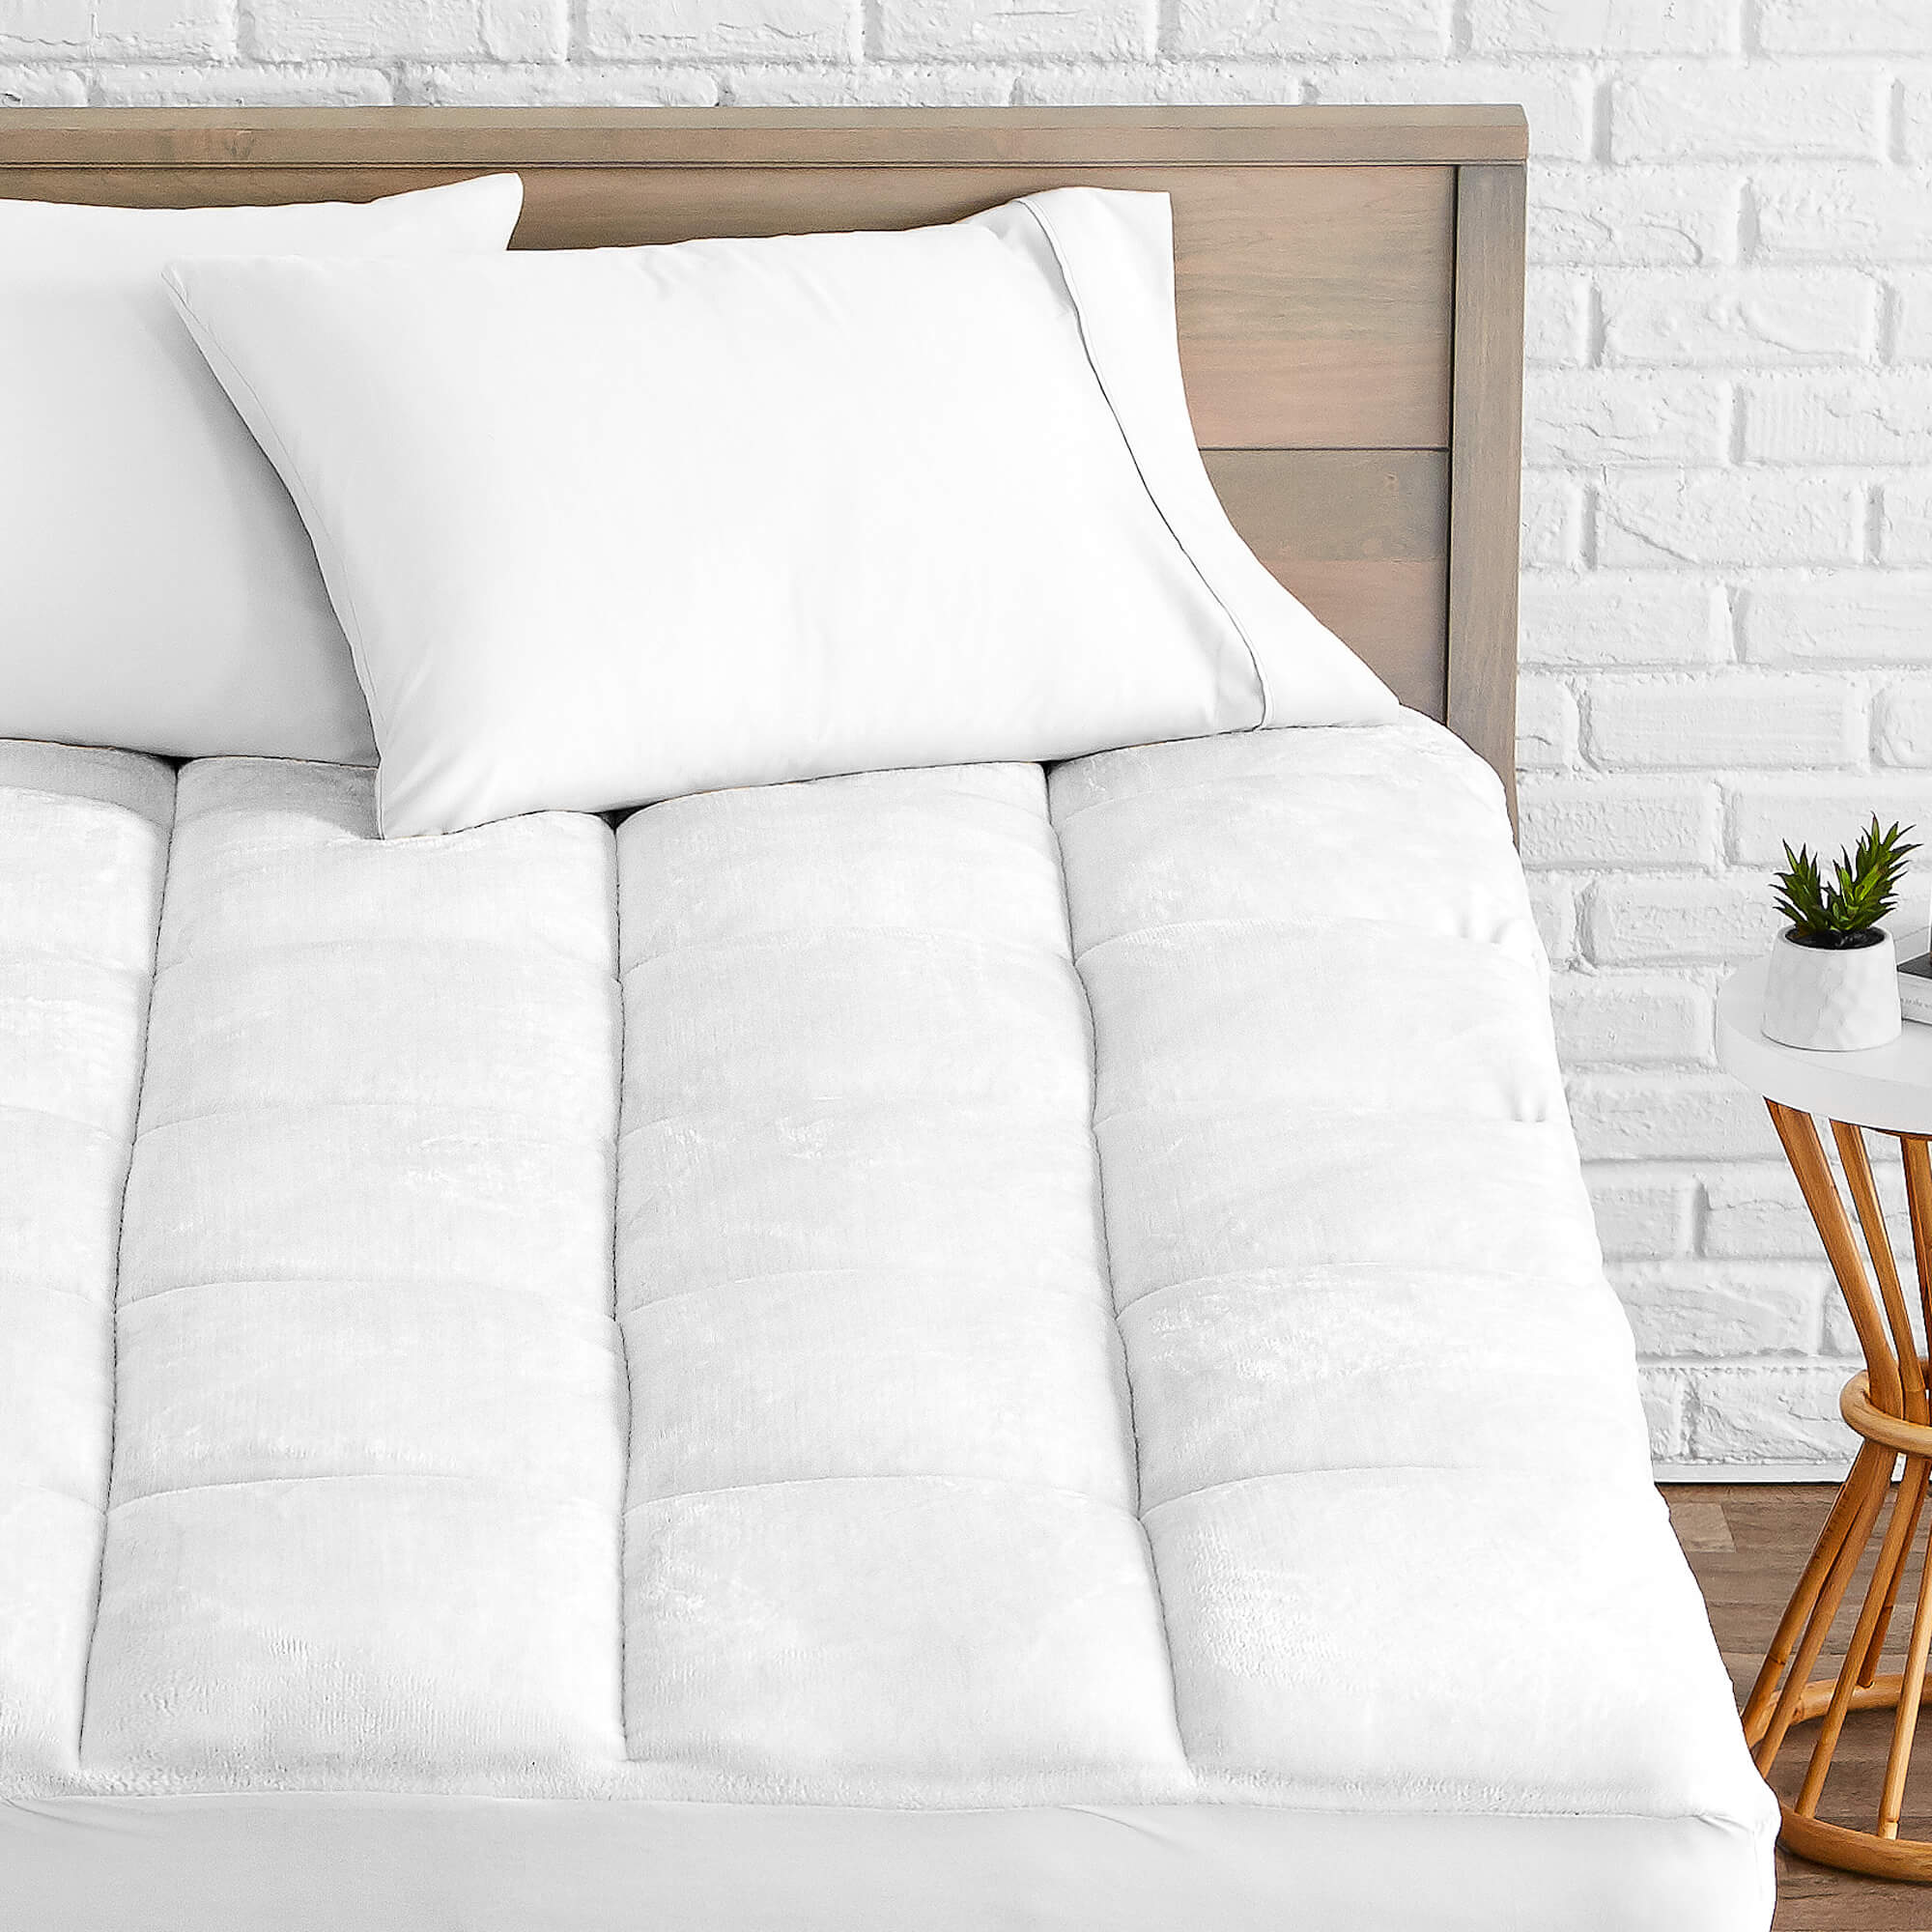 Perfect Fit Queen Washable Wool Cool Wool Extra Plush Down Alternative Reversible Mattress Pad // Topper Hypoallergenic